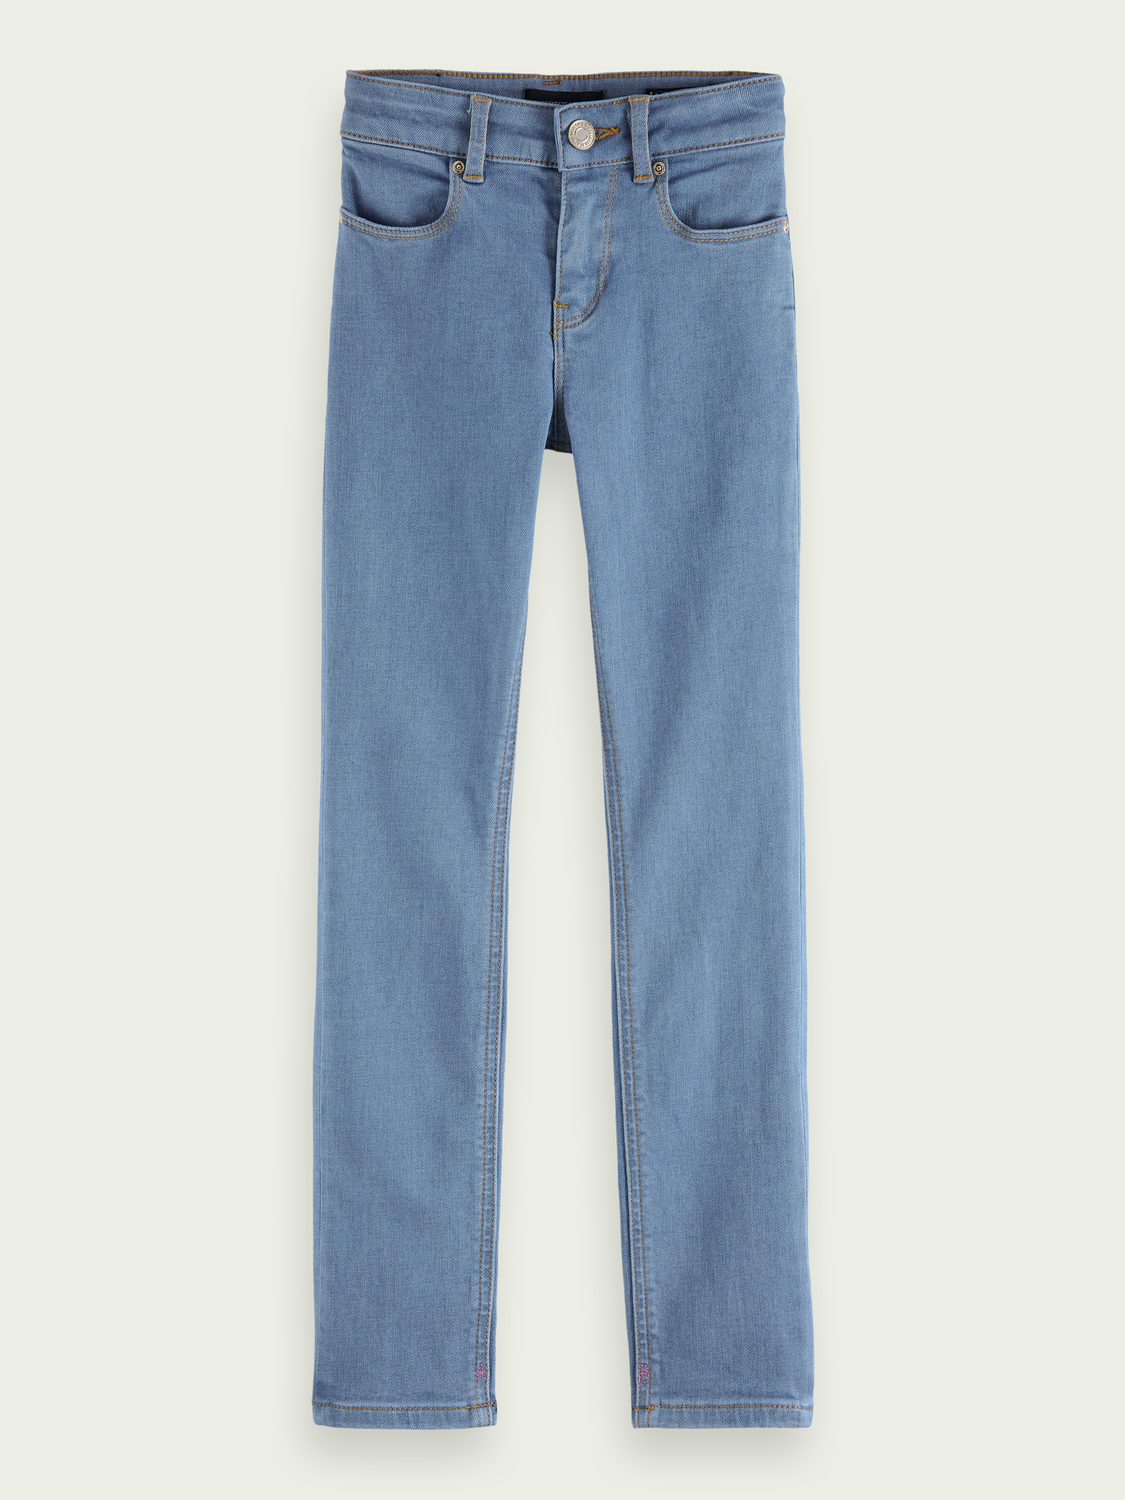 Kids La Charmante skinny fit organic cotton blend jeans - Bright Eyes